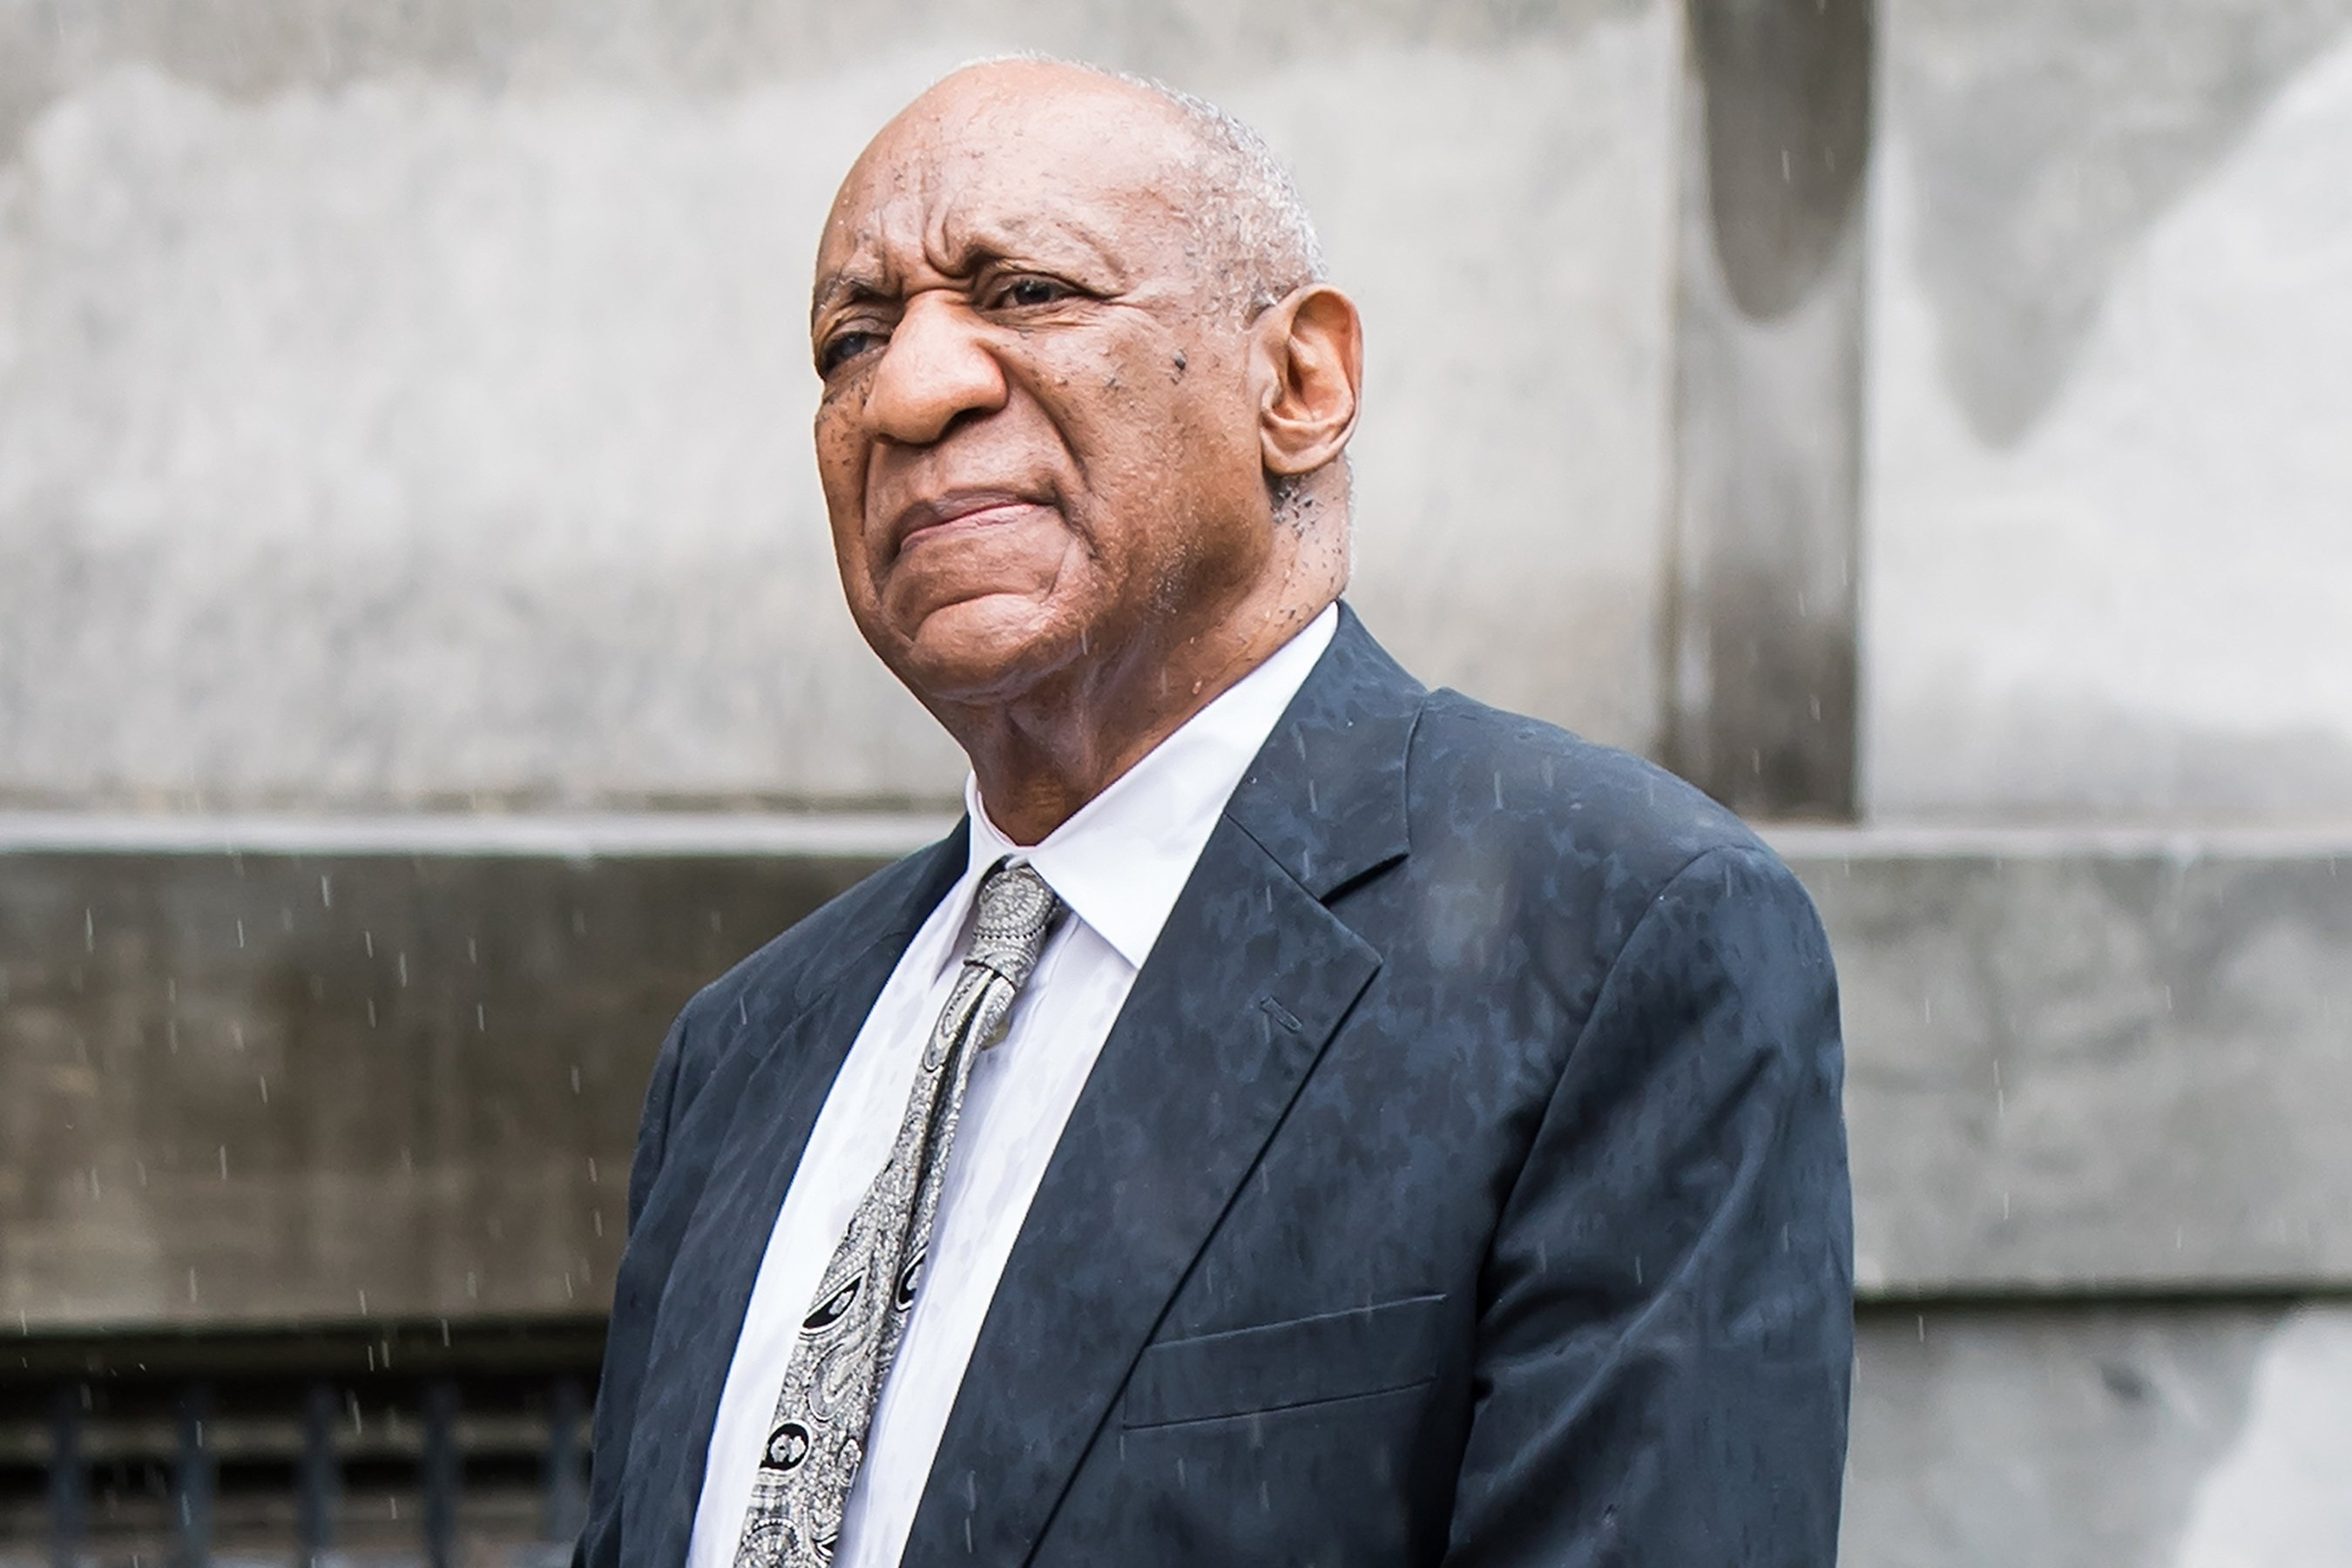 Bill Cosby's Kennedy Center Honors and Mark Twain Prize rescinded